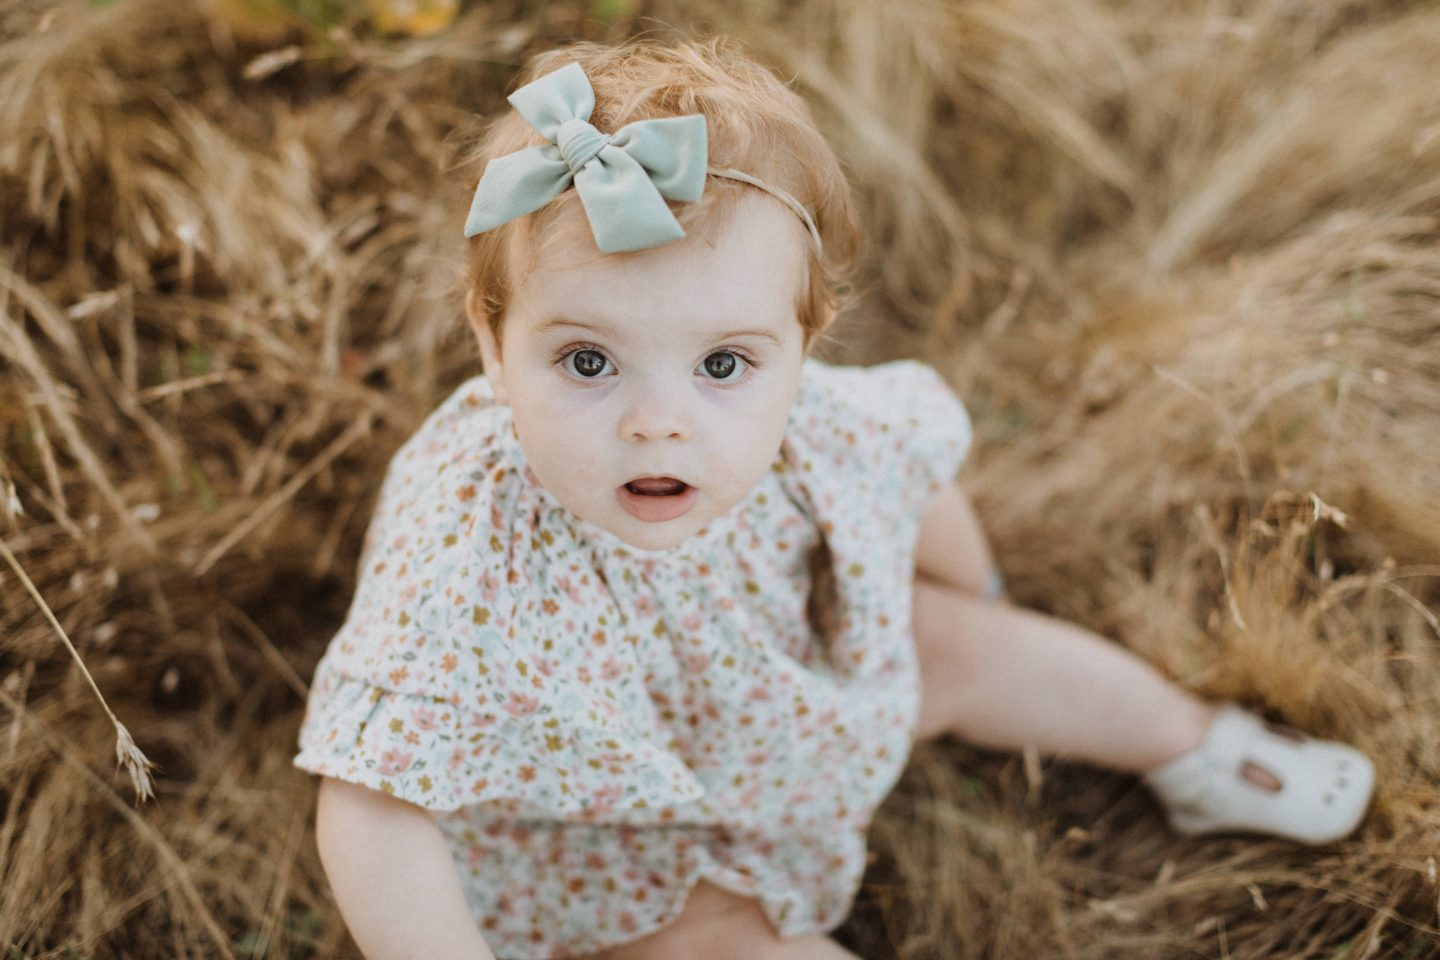 Life Update by popular lifestyle blog, Navy Grace: image of a baby sitting in some tall grass and wearing white mary jane shoes, a mint green bow head band, and a floral print dress.